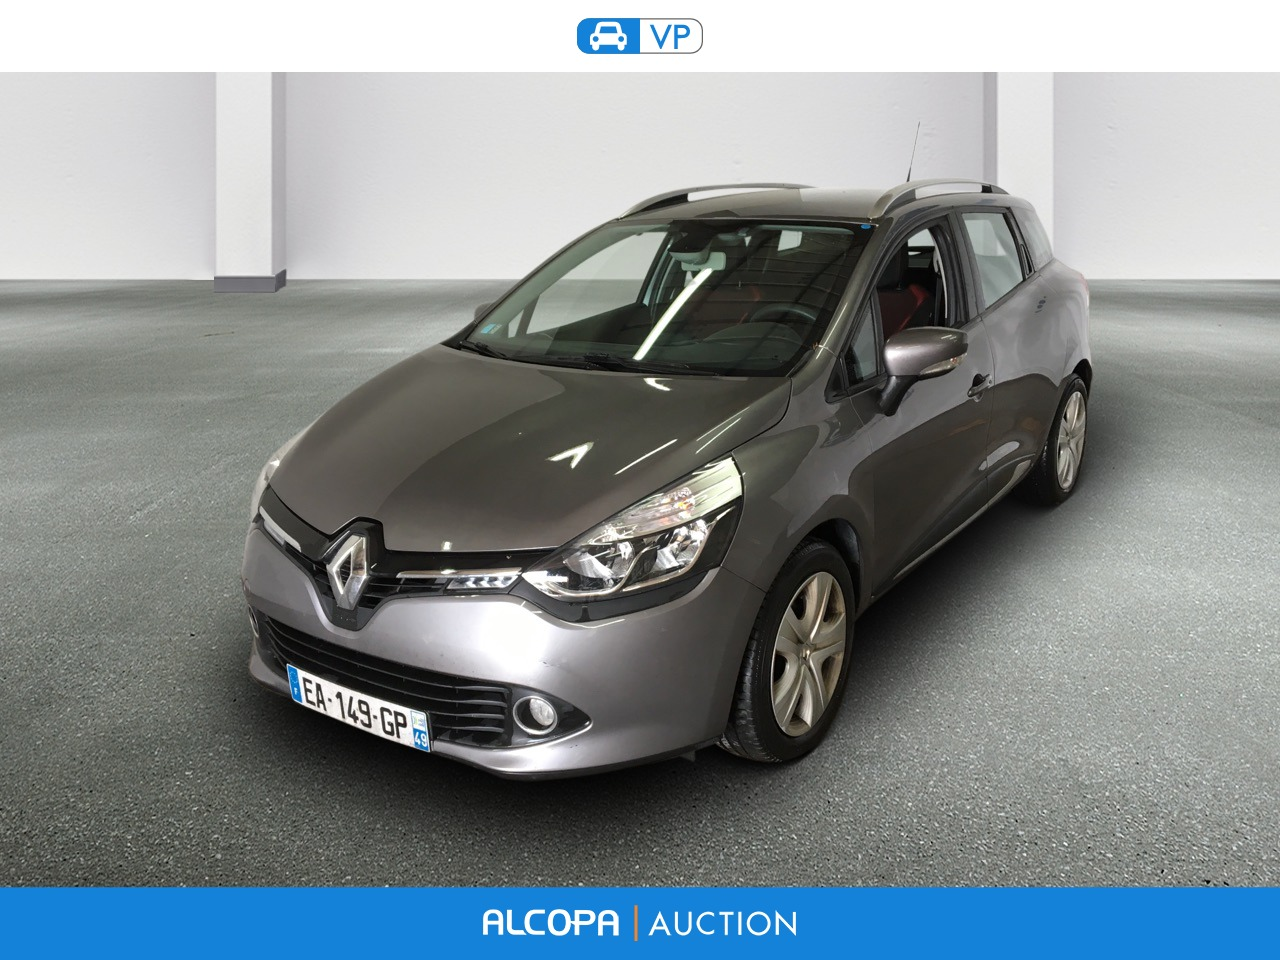 renault clio iv estate business clio estate dci 90 energy eco2 82g business alcopa auction. Black Bedroom Furniture Sets. Home Design Ideas